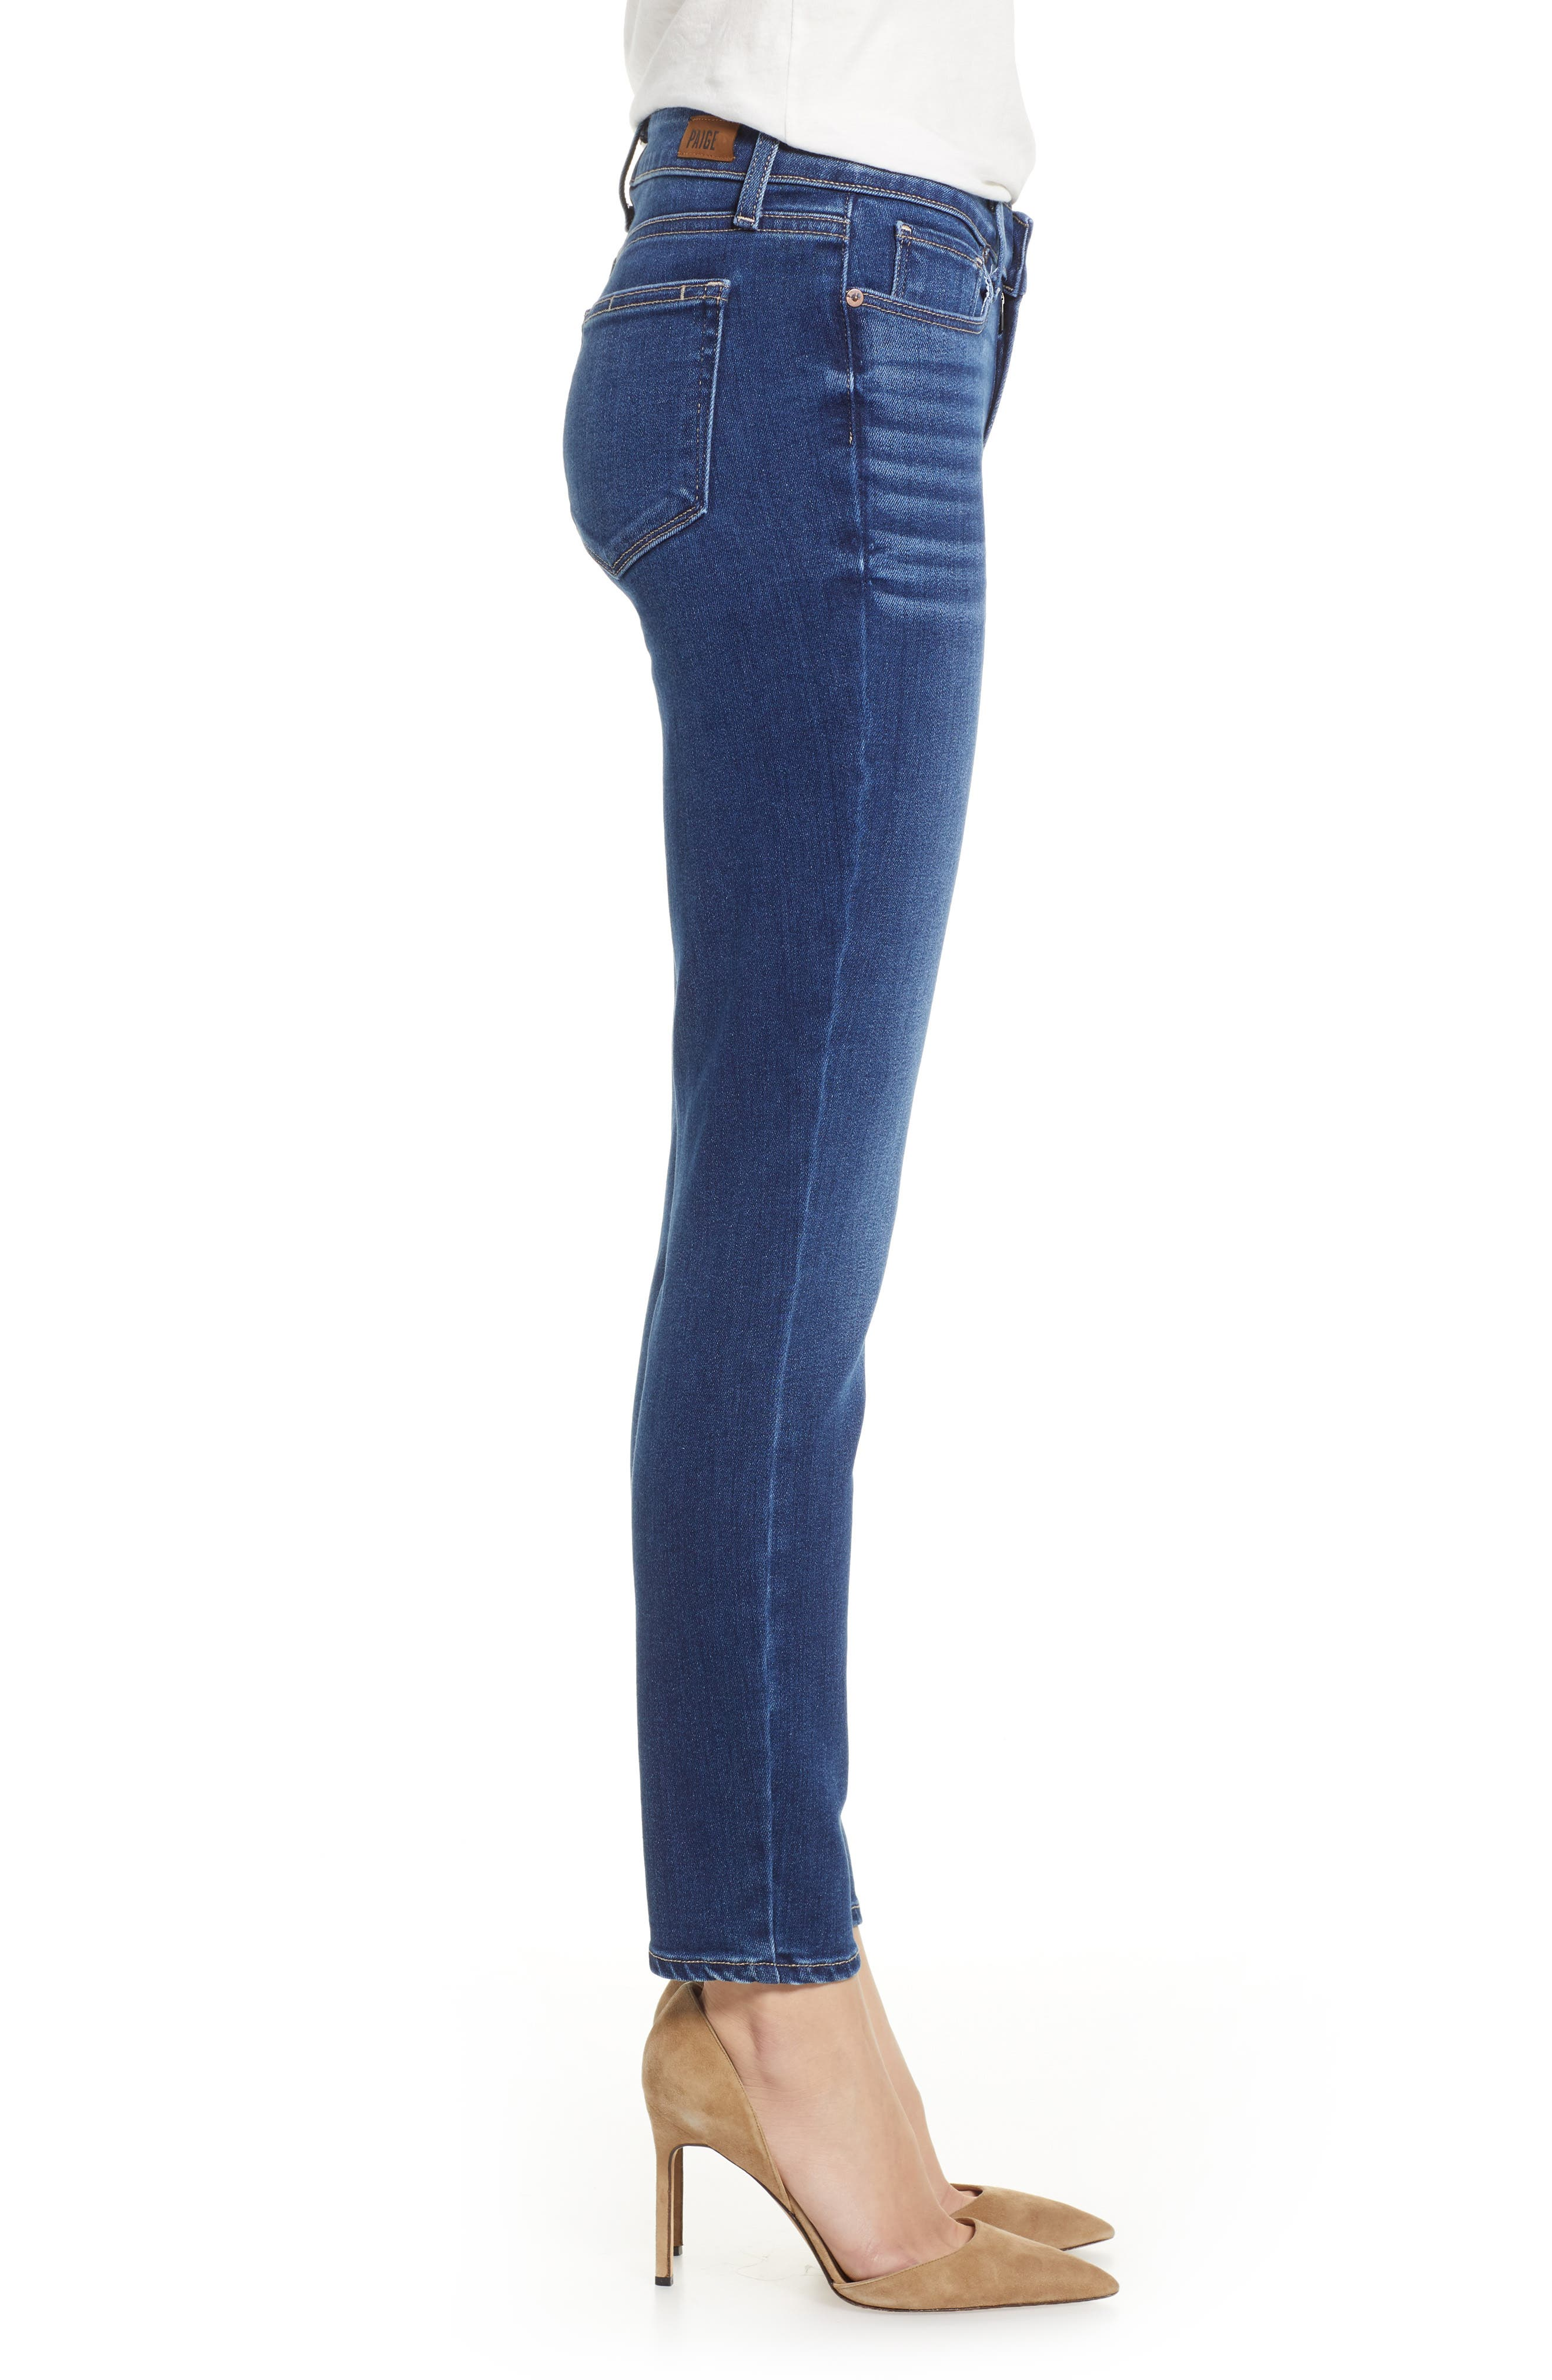 Verdugo Ankle Skinny Jeans,                             Alternate thumbnail 3, color,                             TOWNSEND